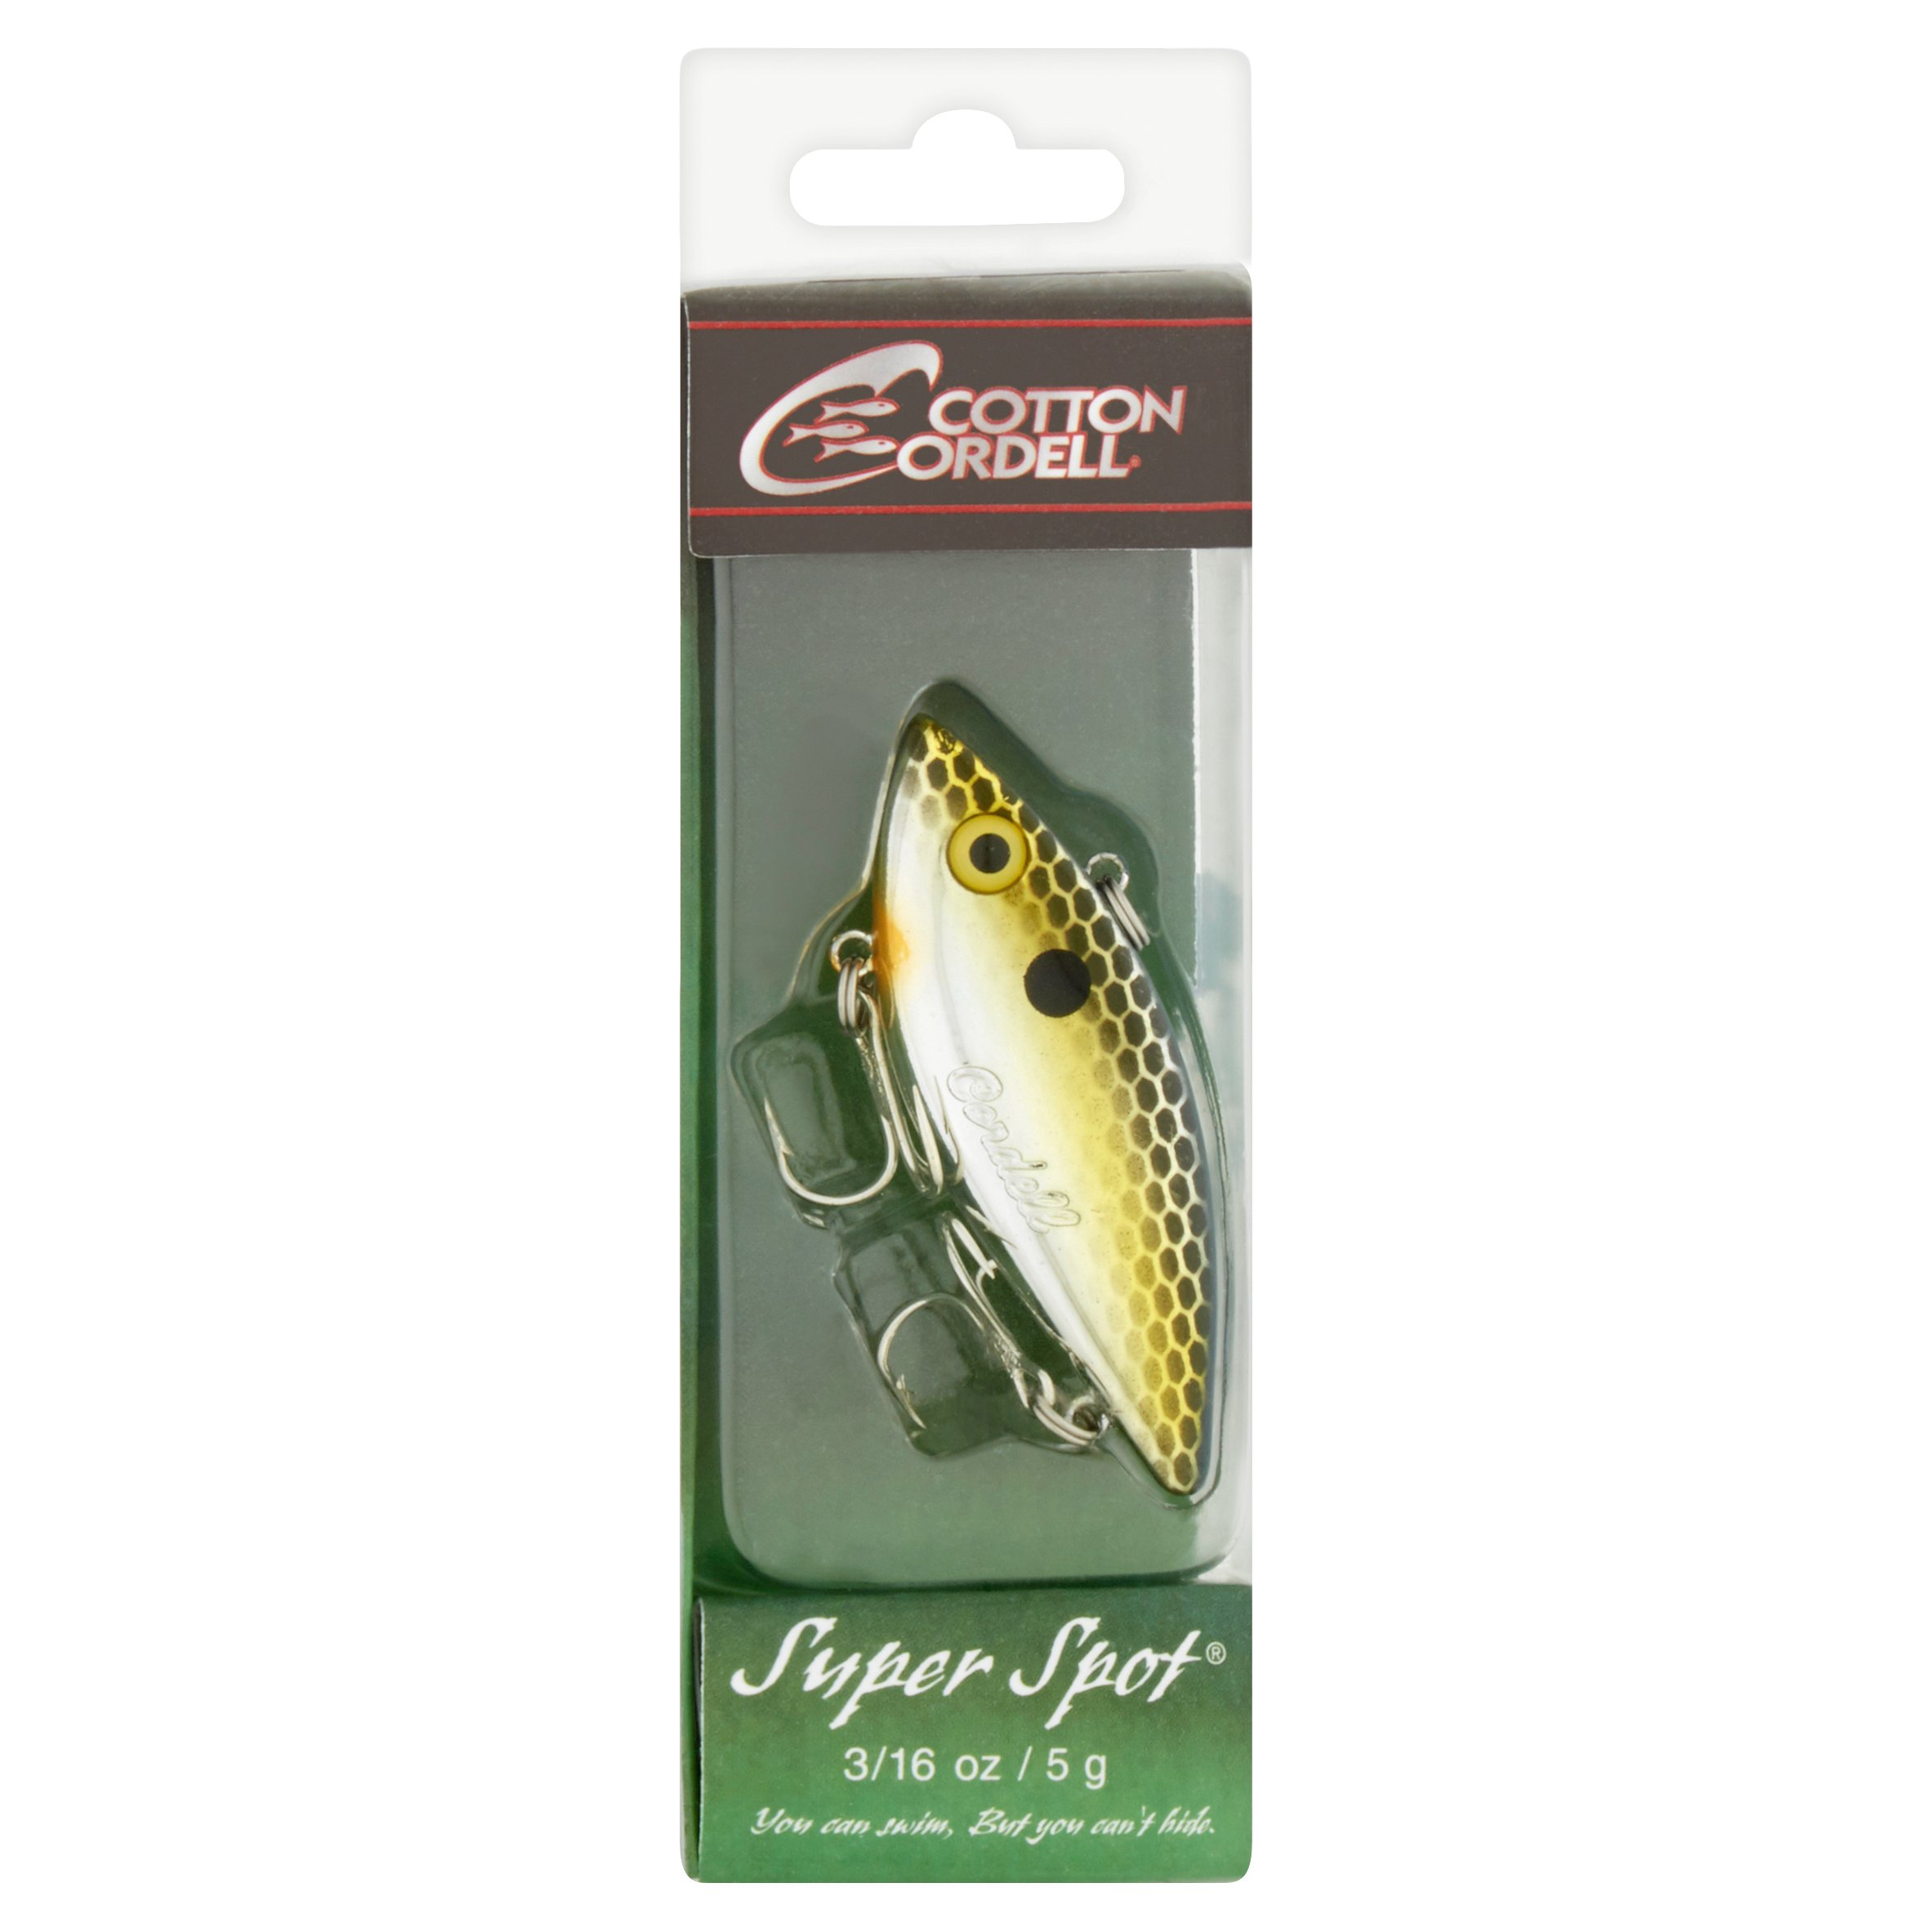 Cotton Cordell Super Spot Lure, 3/16 oz